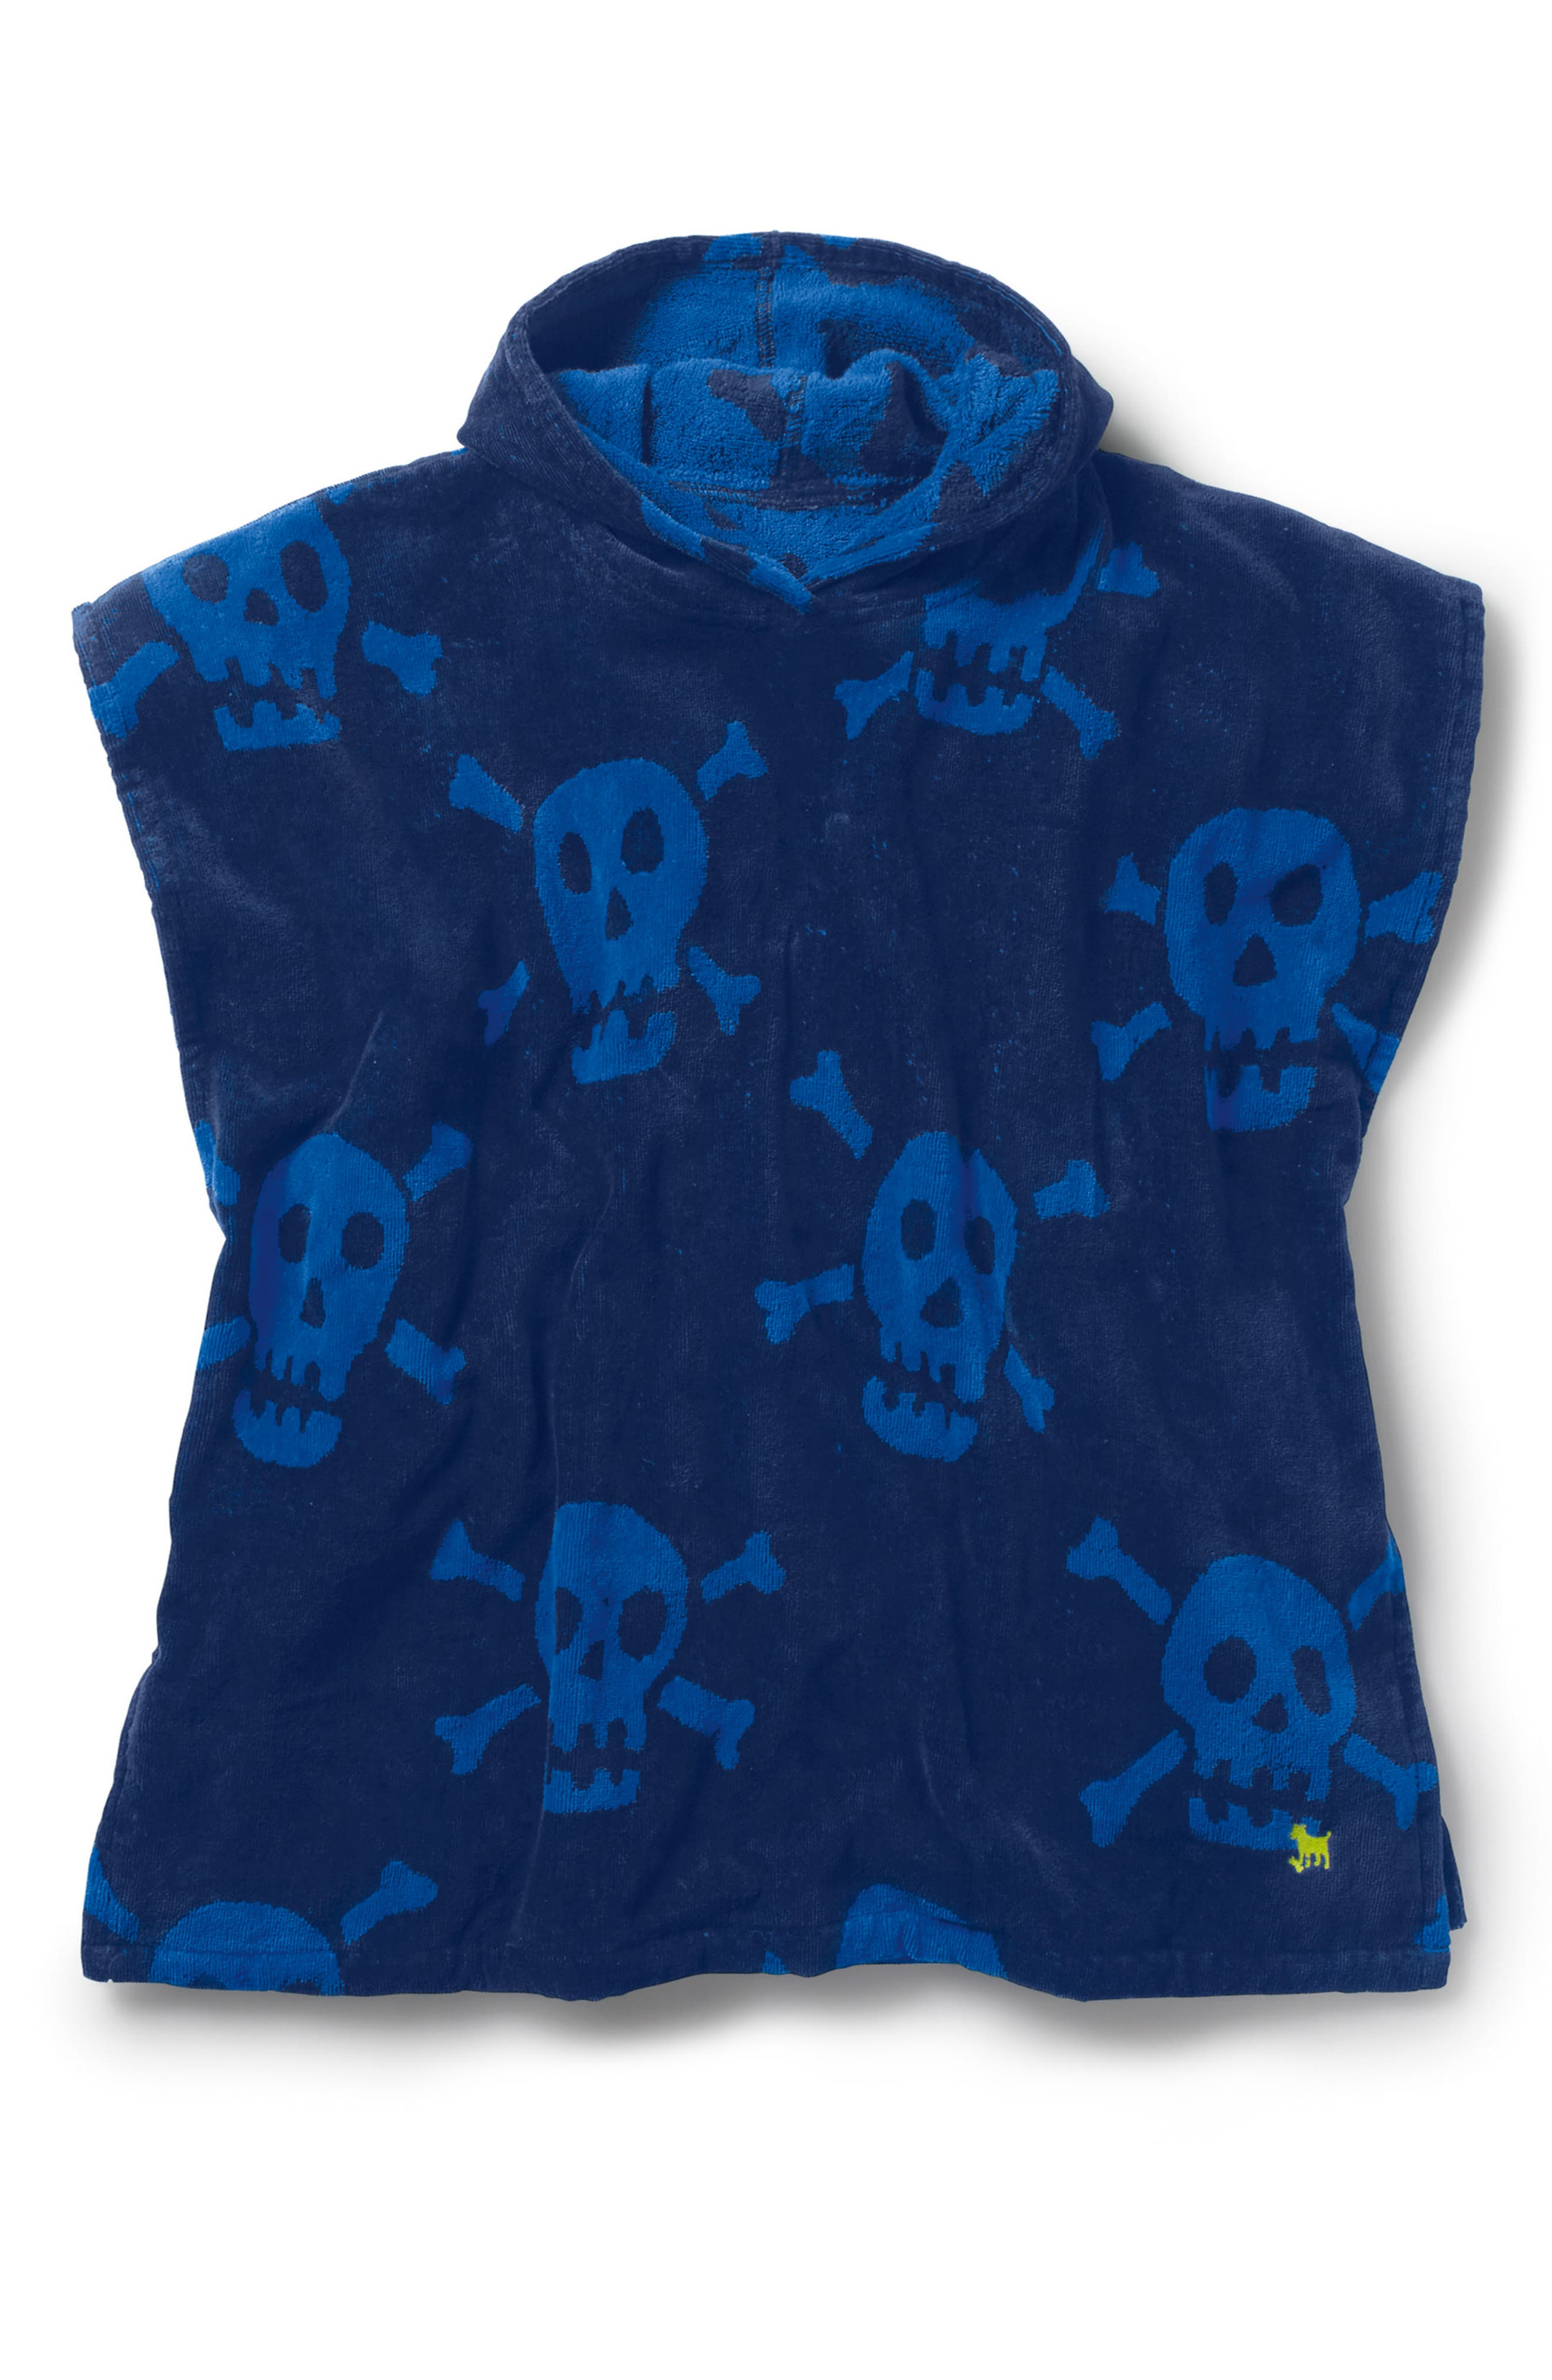 Hooded Poncho Cover-Up,                             Main thumbnail 1, color,                             Beacon Blue Large Skulls